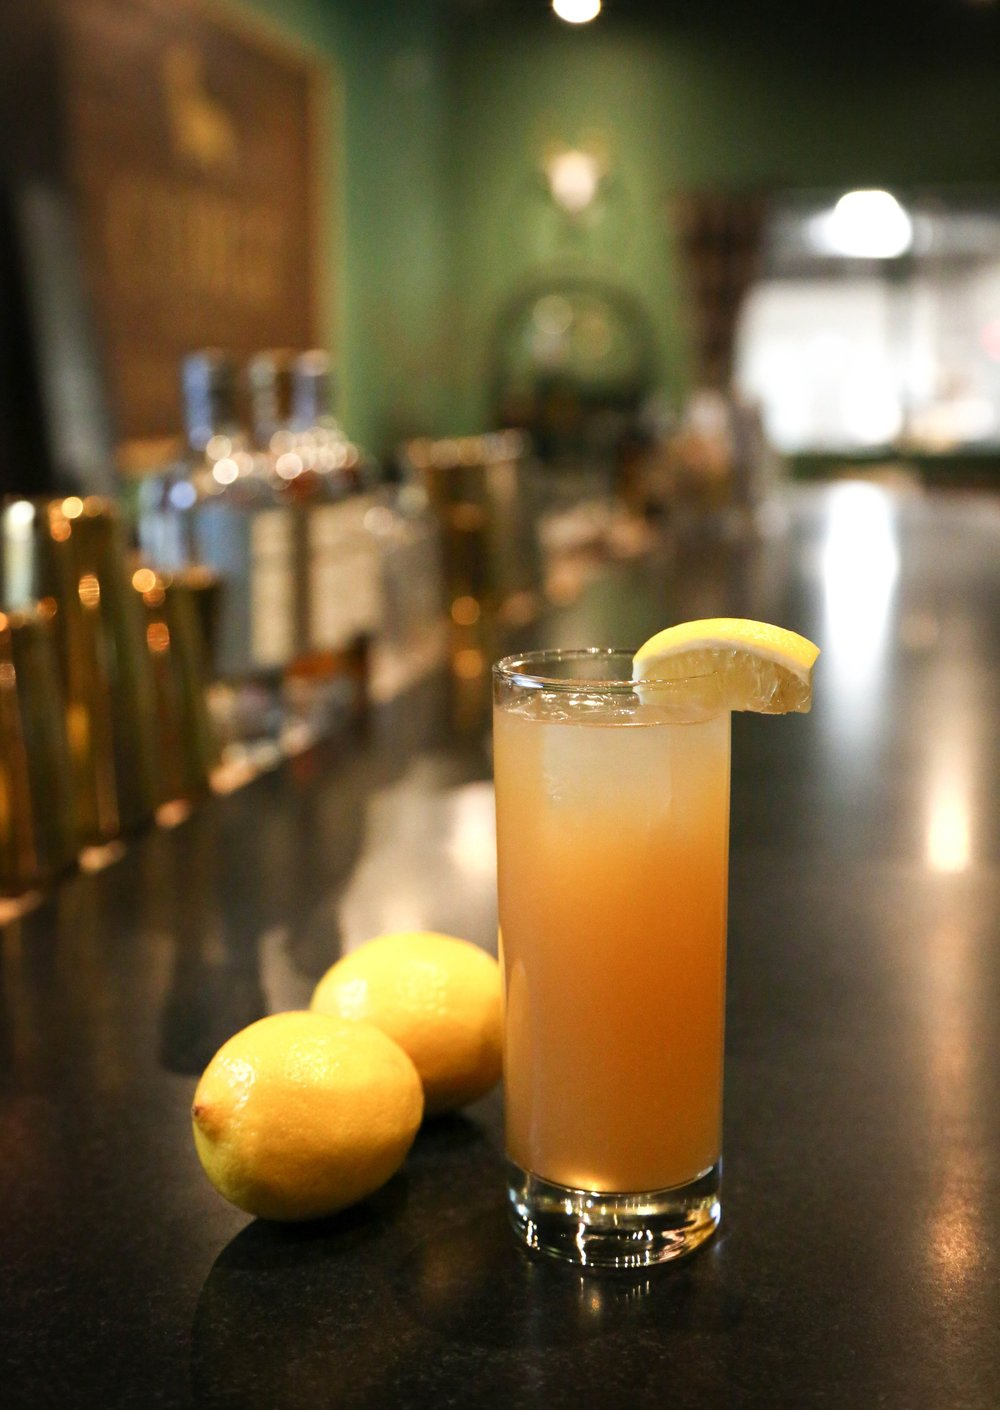 GREEN JACKET   2 oz Corgi Spirits Earl Grey Gin  1 oz fresh lemon juice  1 oz water  2 oz mango puree 2 OR 1 oz simple syrup  2 dashes Angostura Bitters    Fill a shaker with ice, add all ingredients and shake vigorously. Pour into a highball glass and garnish with lemon wheel.